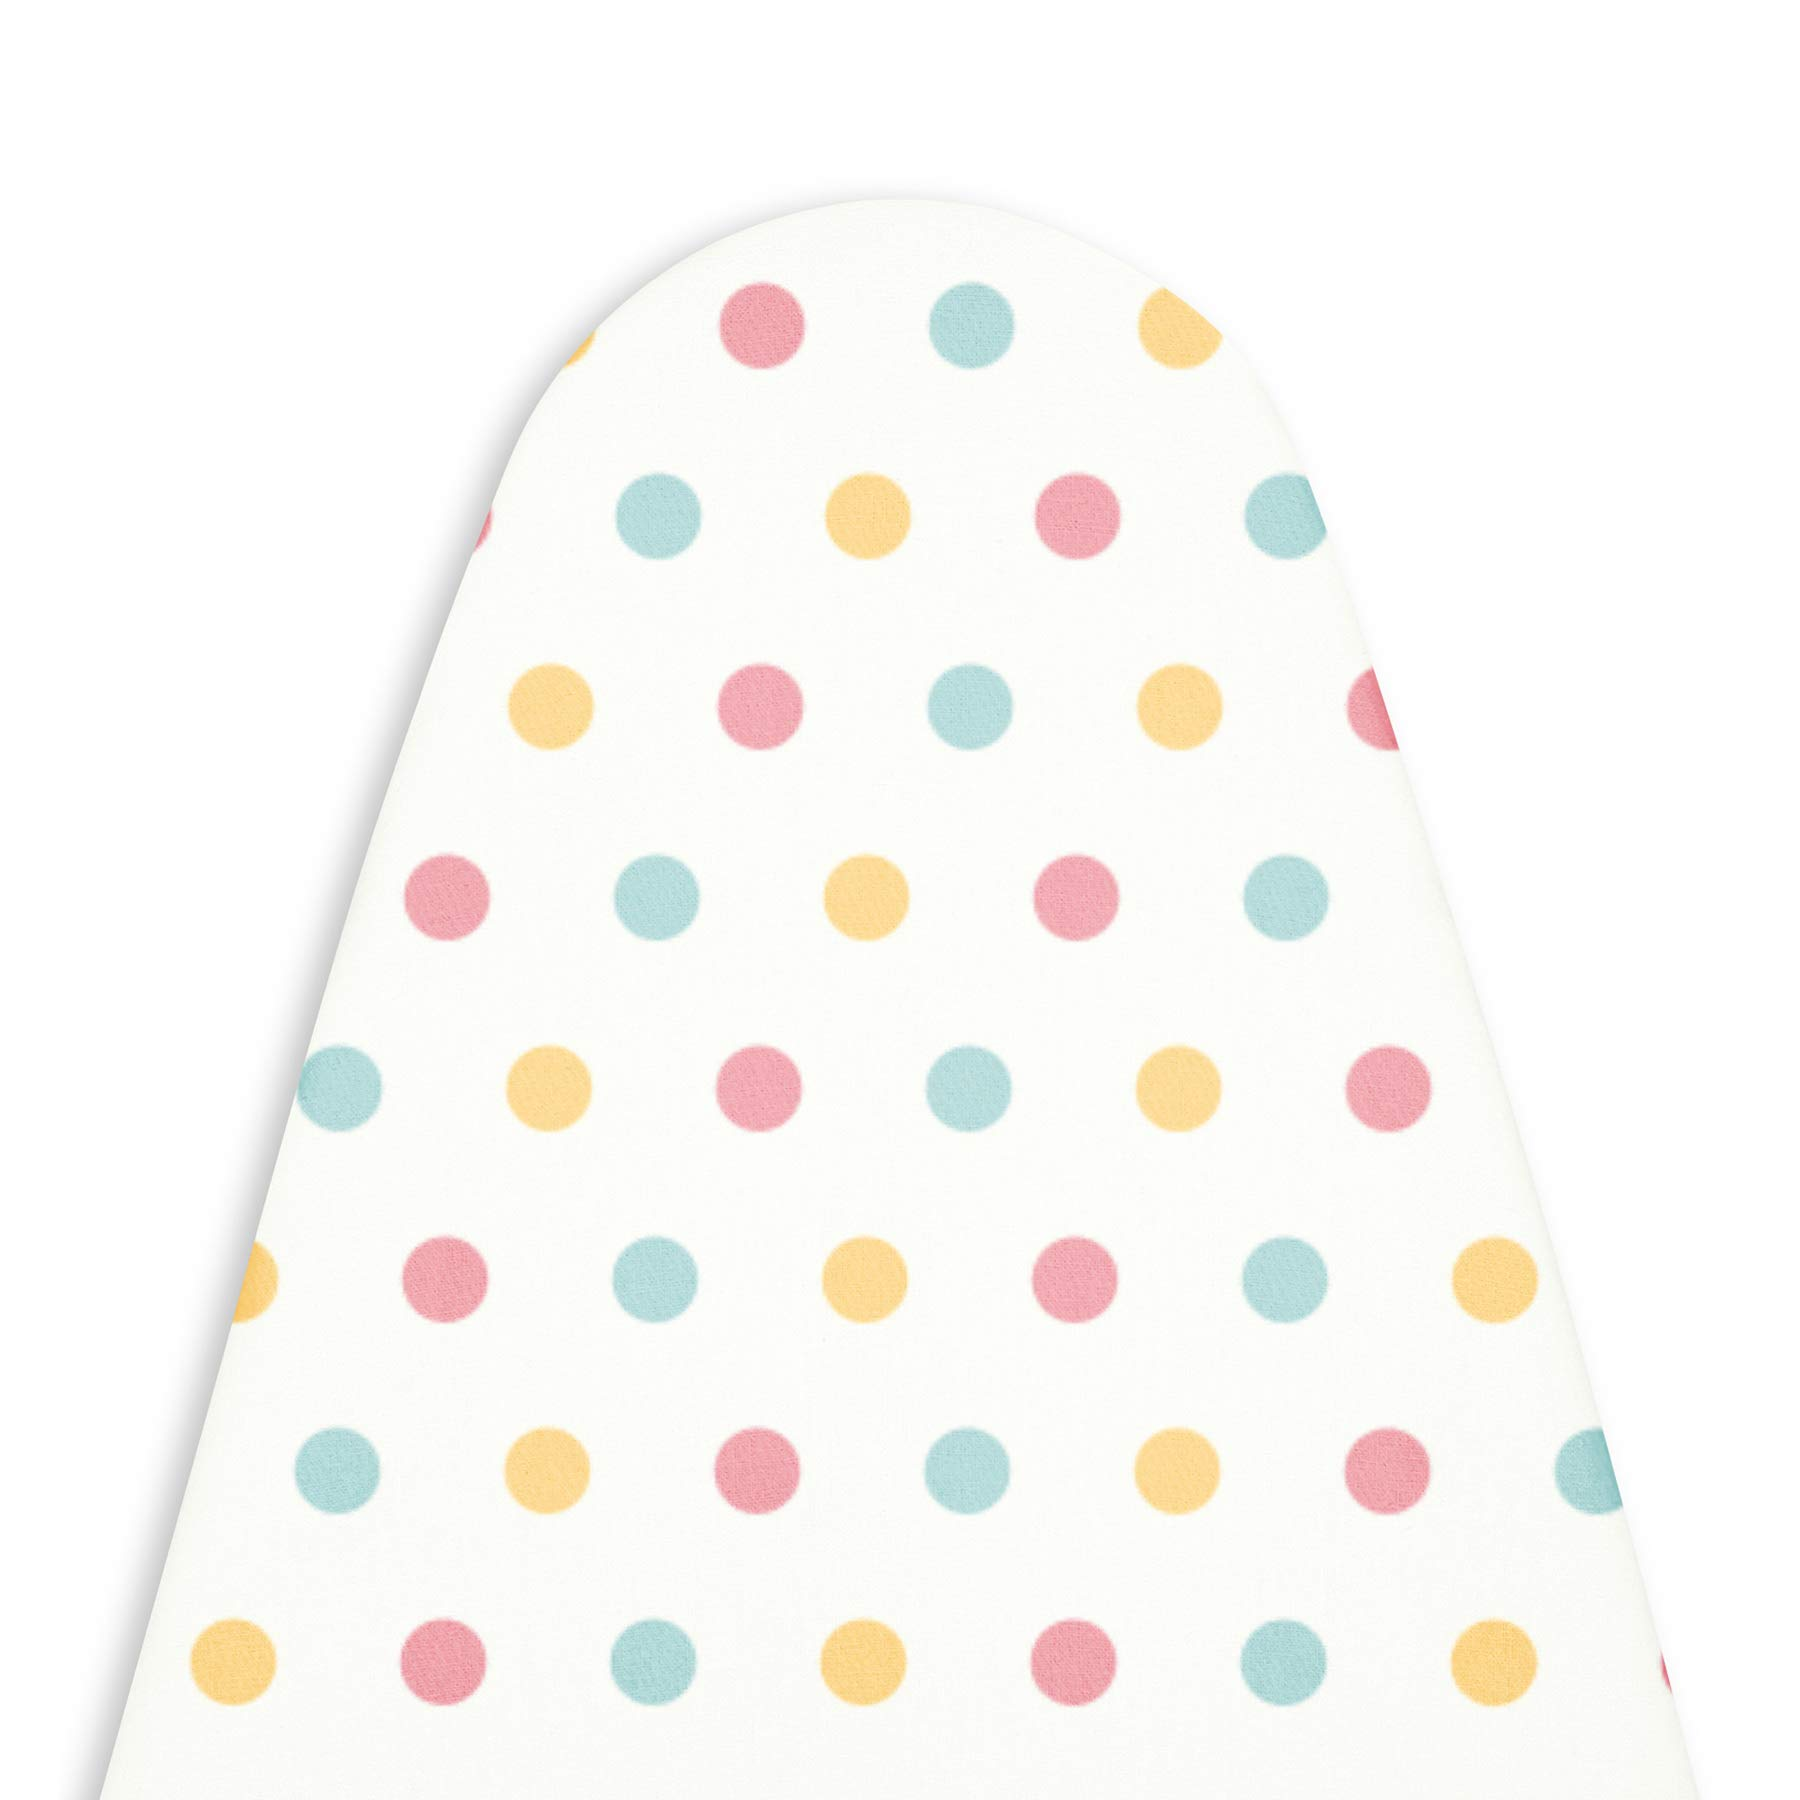 Encasa Homes Ironing Board Cover with 3mm Thick Felt Pad for Steam Press (Fits Standard Large Boards of 122 x 38 cm) Heat Reflective, Scorch & Stain Resistant, Printed - Polka Dot (B06XR8WGHT) Amazon Price History, Amazon Price Tracker